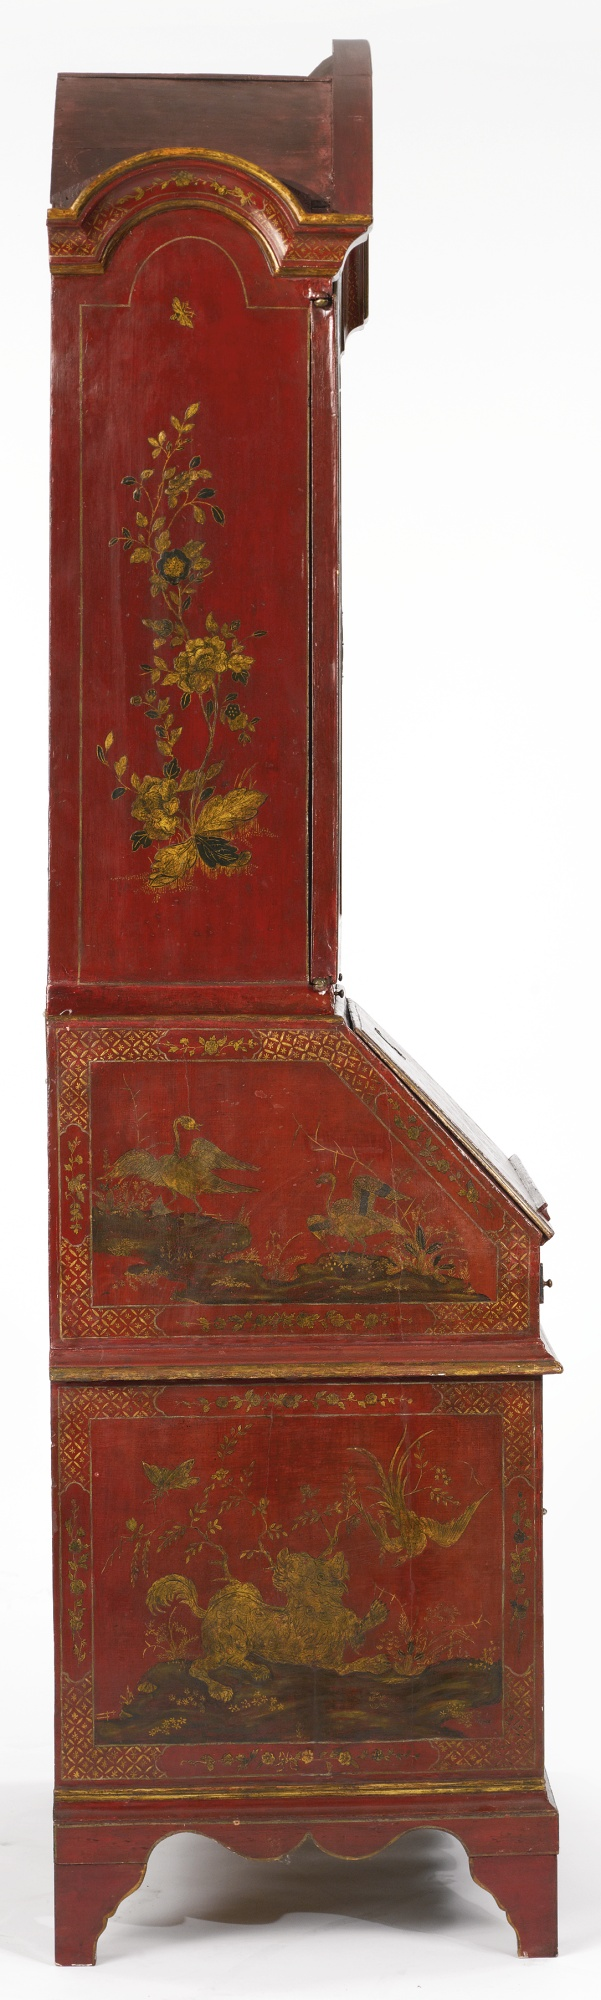 A George Ii Red Japanned Desk And Bookcase Lot Beautiful Furniture Annie Sloan Chalk Paint Antiques